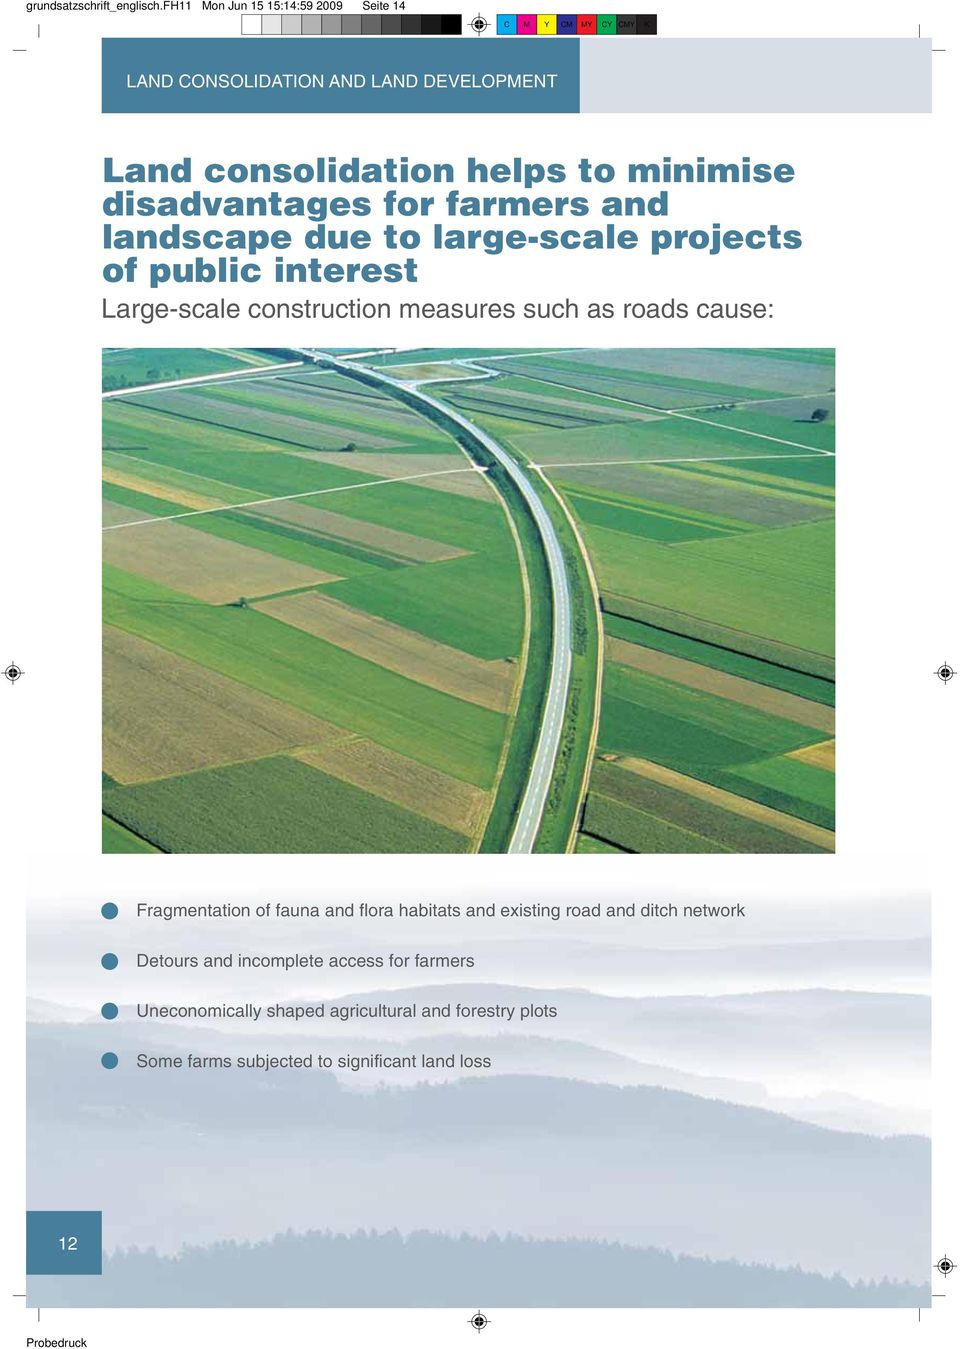 disadvantages for farmers and landscape due to large-scale projects of public interest Large-scale construction measures such